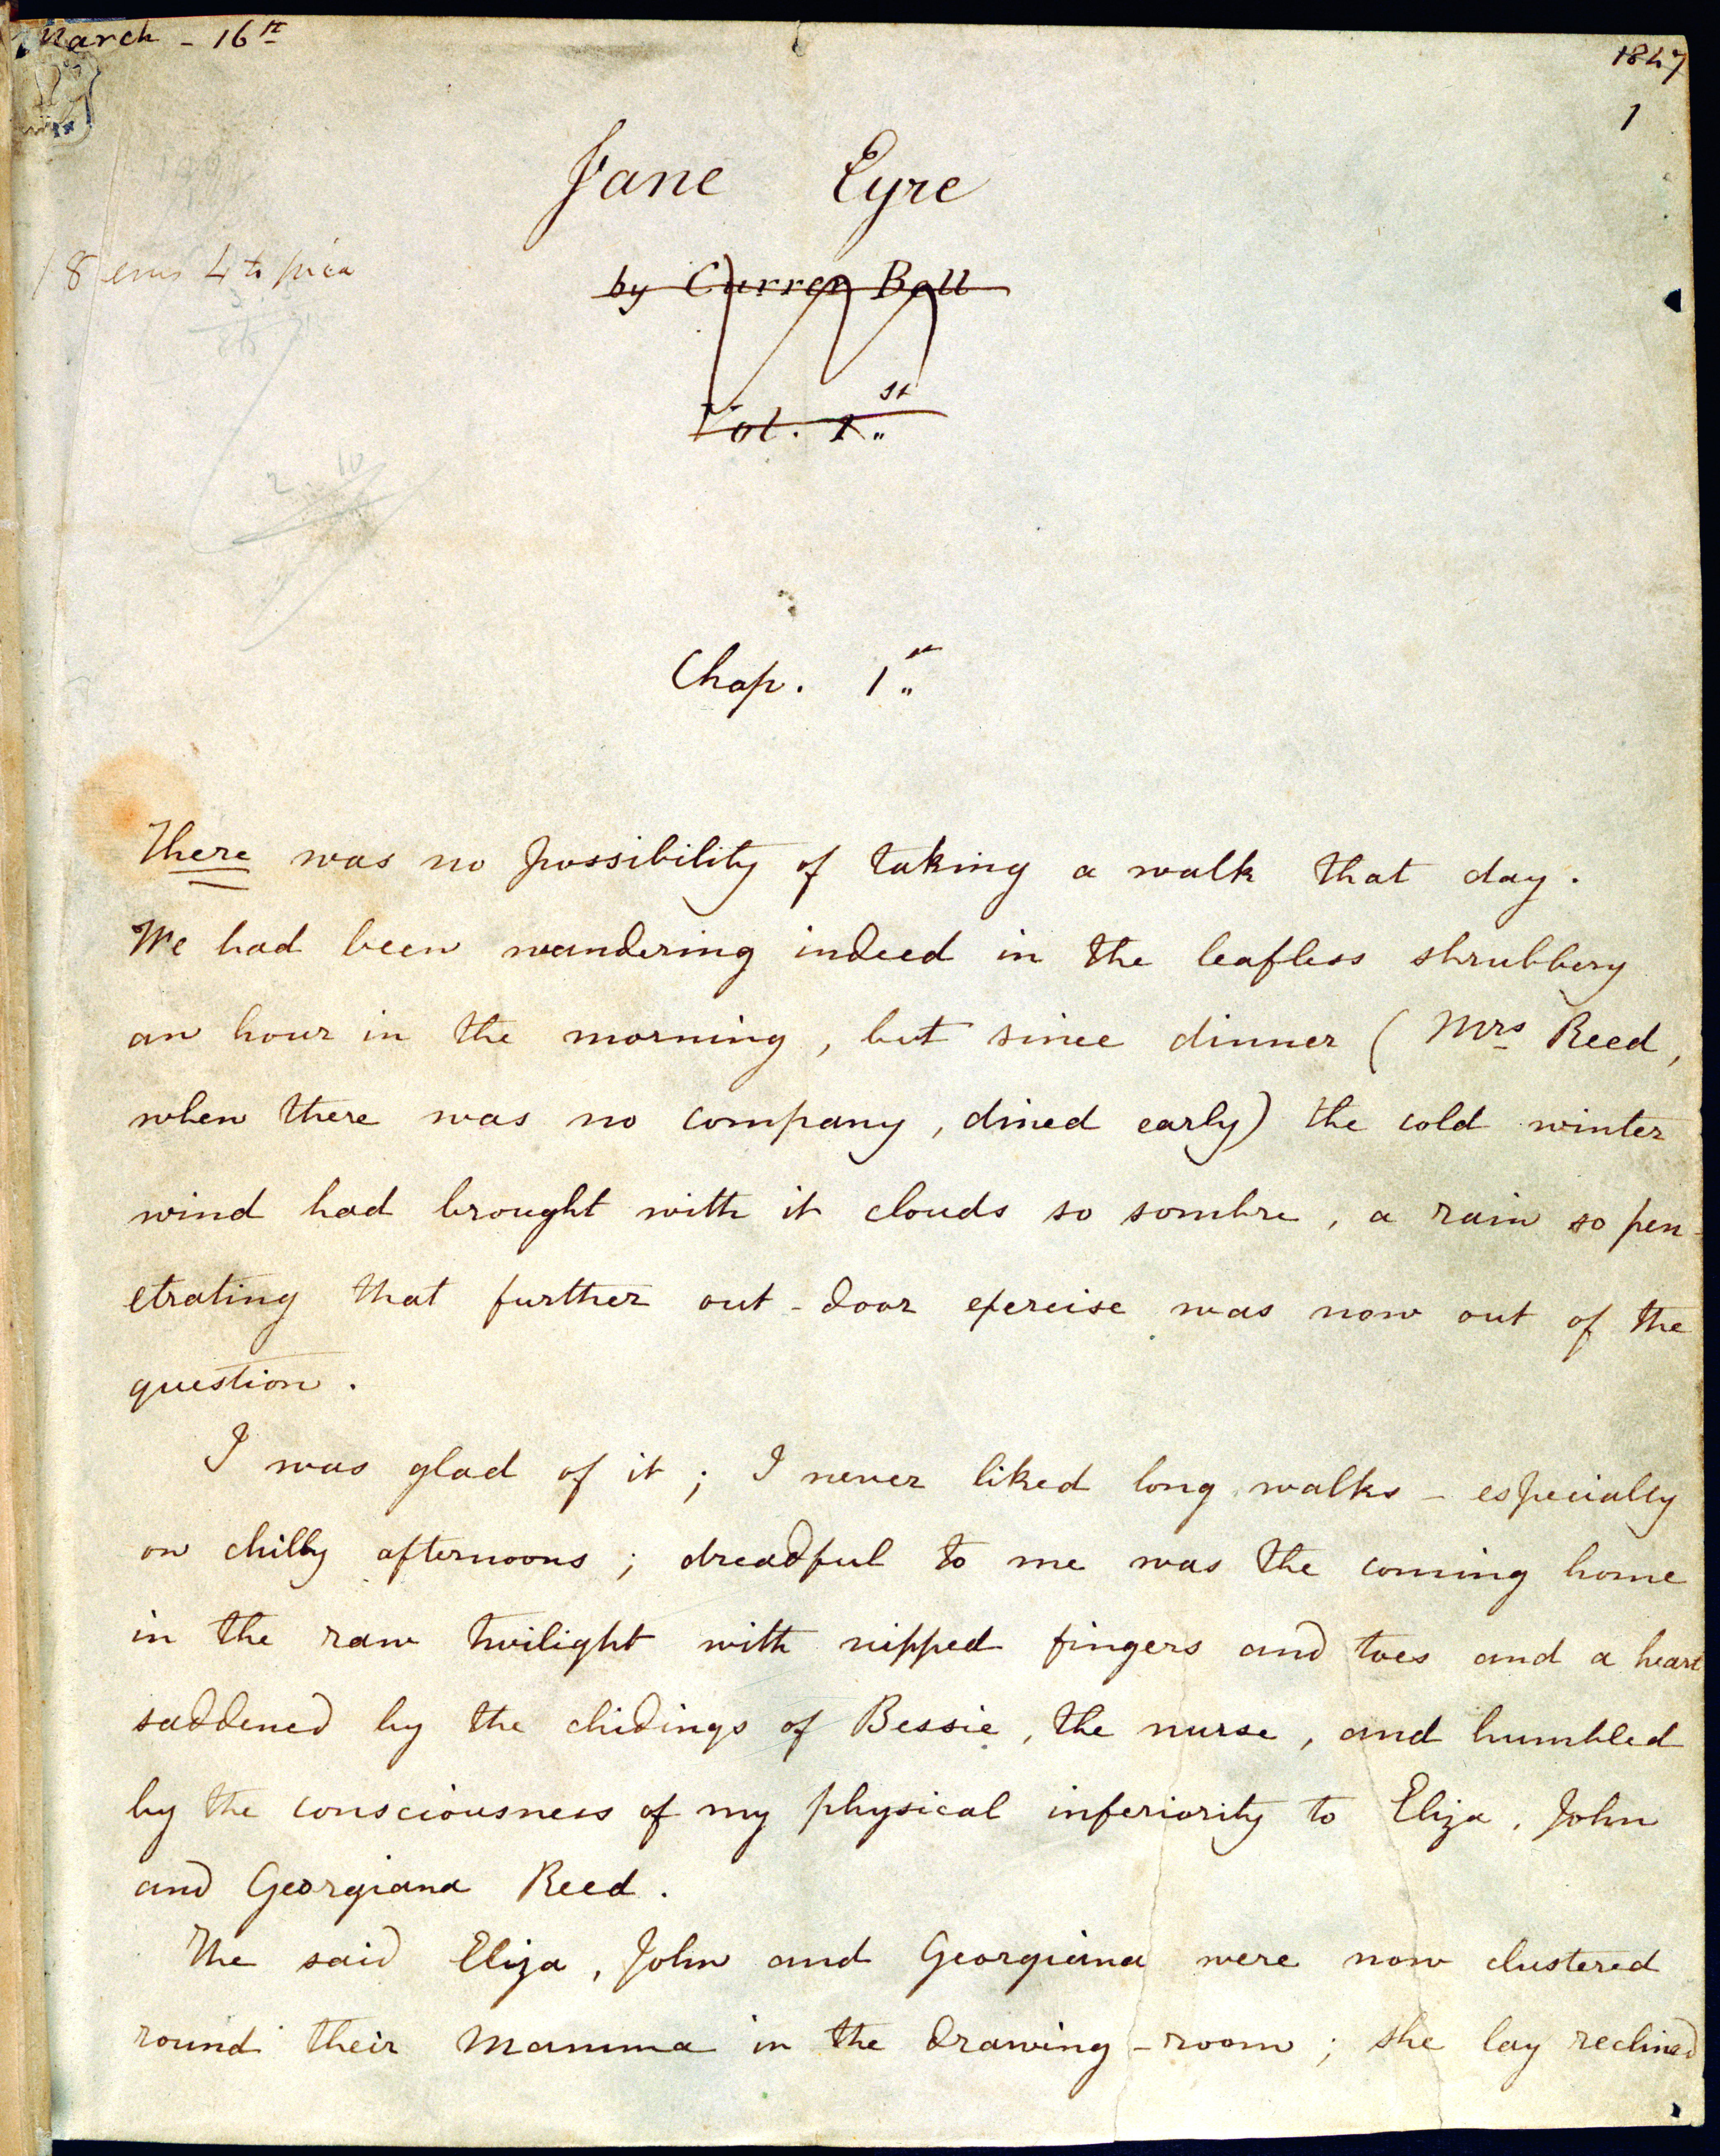 Title page, fair copy manuscript of Charlotte Brontë's Jane Eyre, 1847. Image copyright the British Library Board.